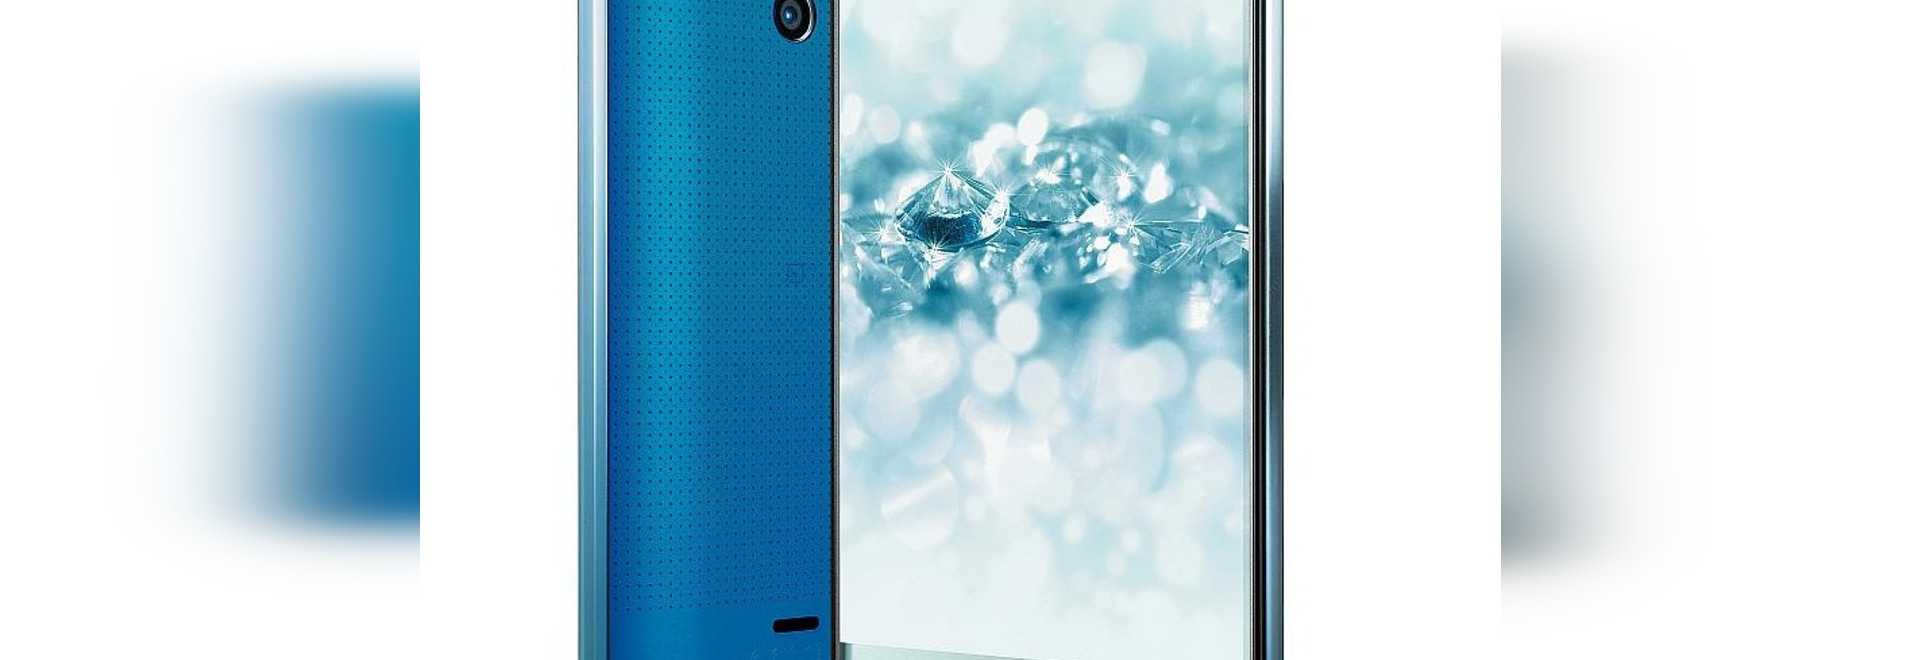 DURABIO resin previously used on the Front Panel of Sharp's AQUOS CRYSTAL 2 Smartphone. Image via Sharp Corporation.